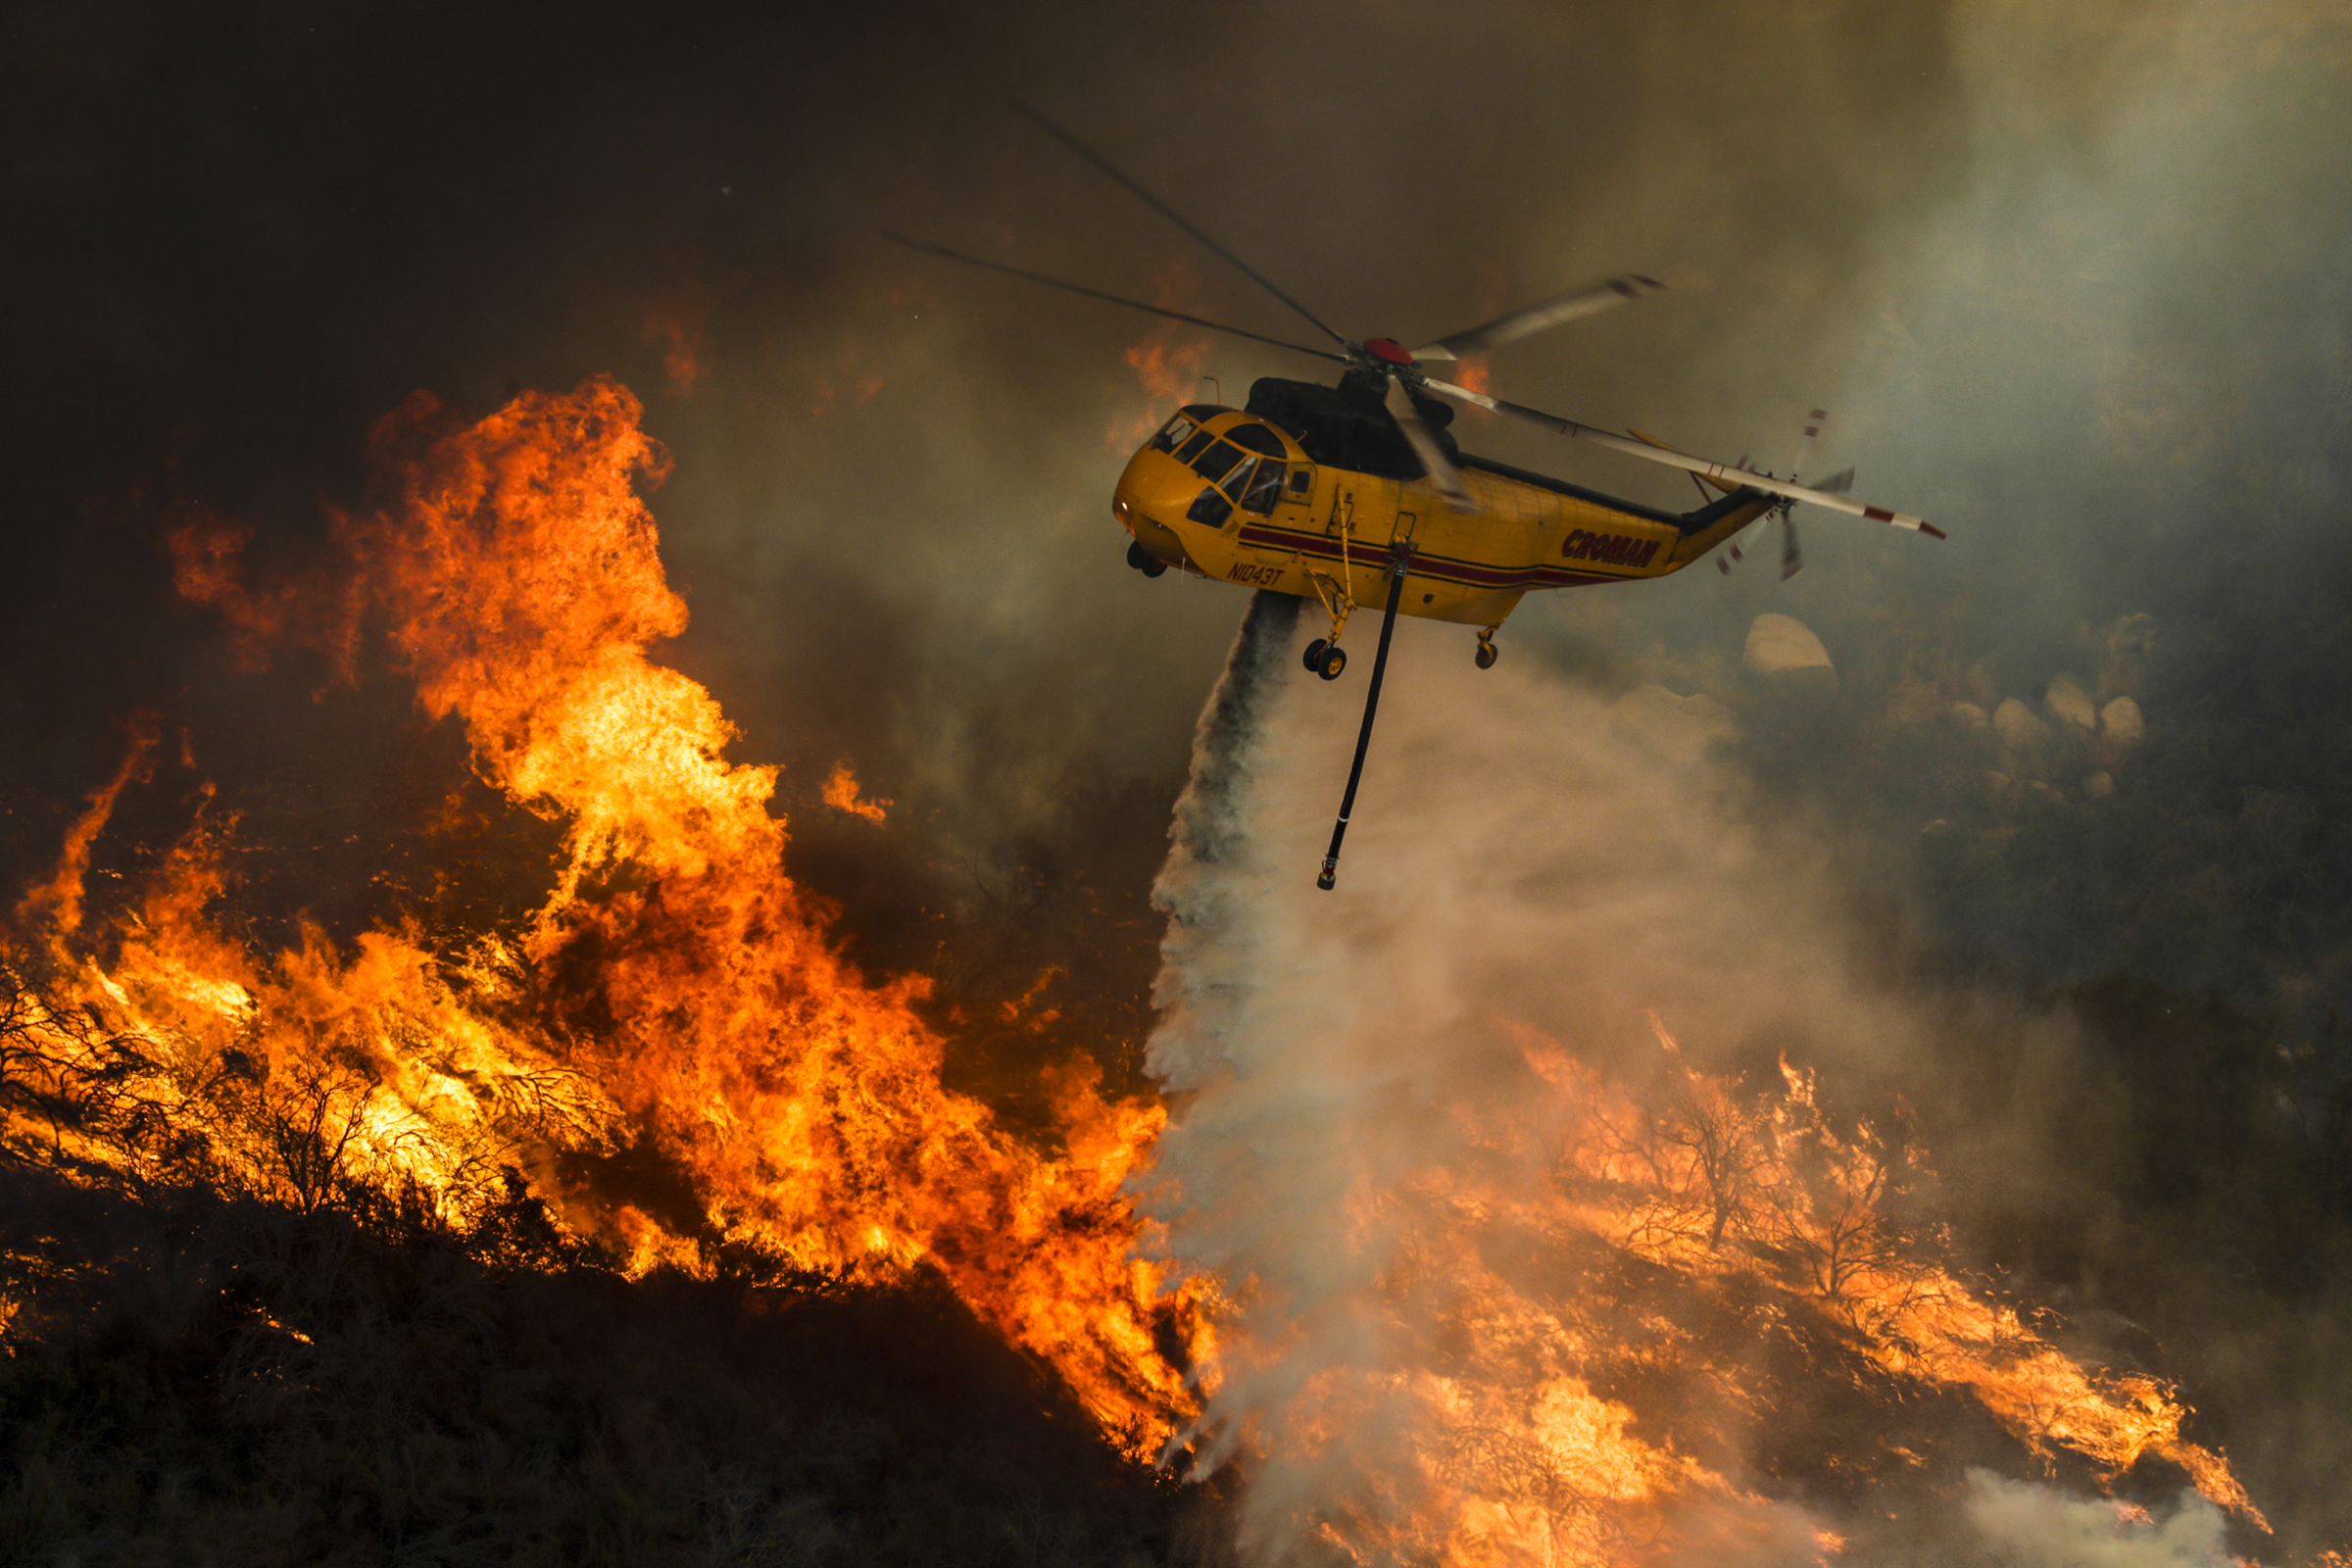 Record Heat Fuels Holy Fire In Southern California, Threatening Homes